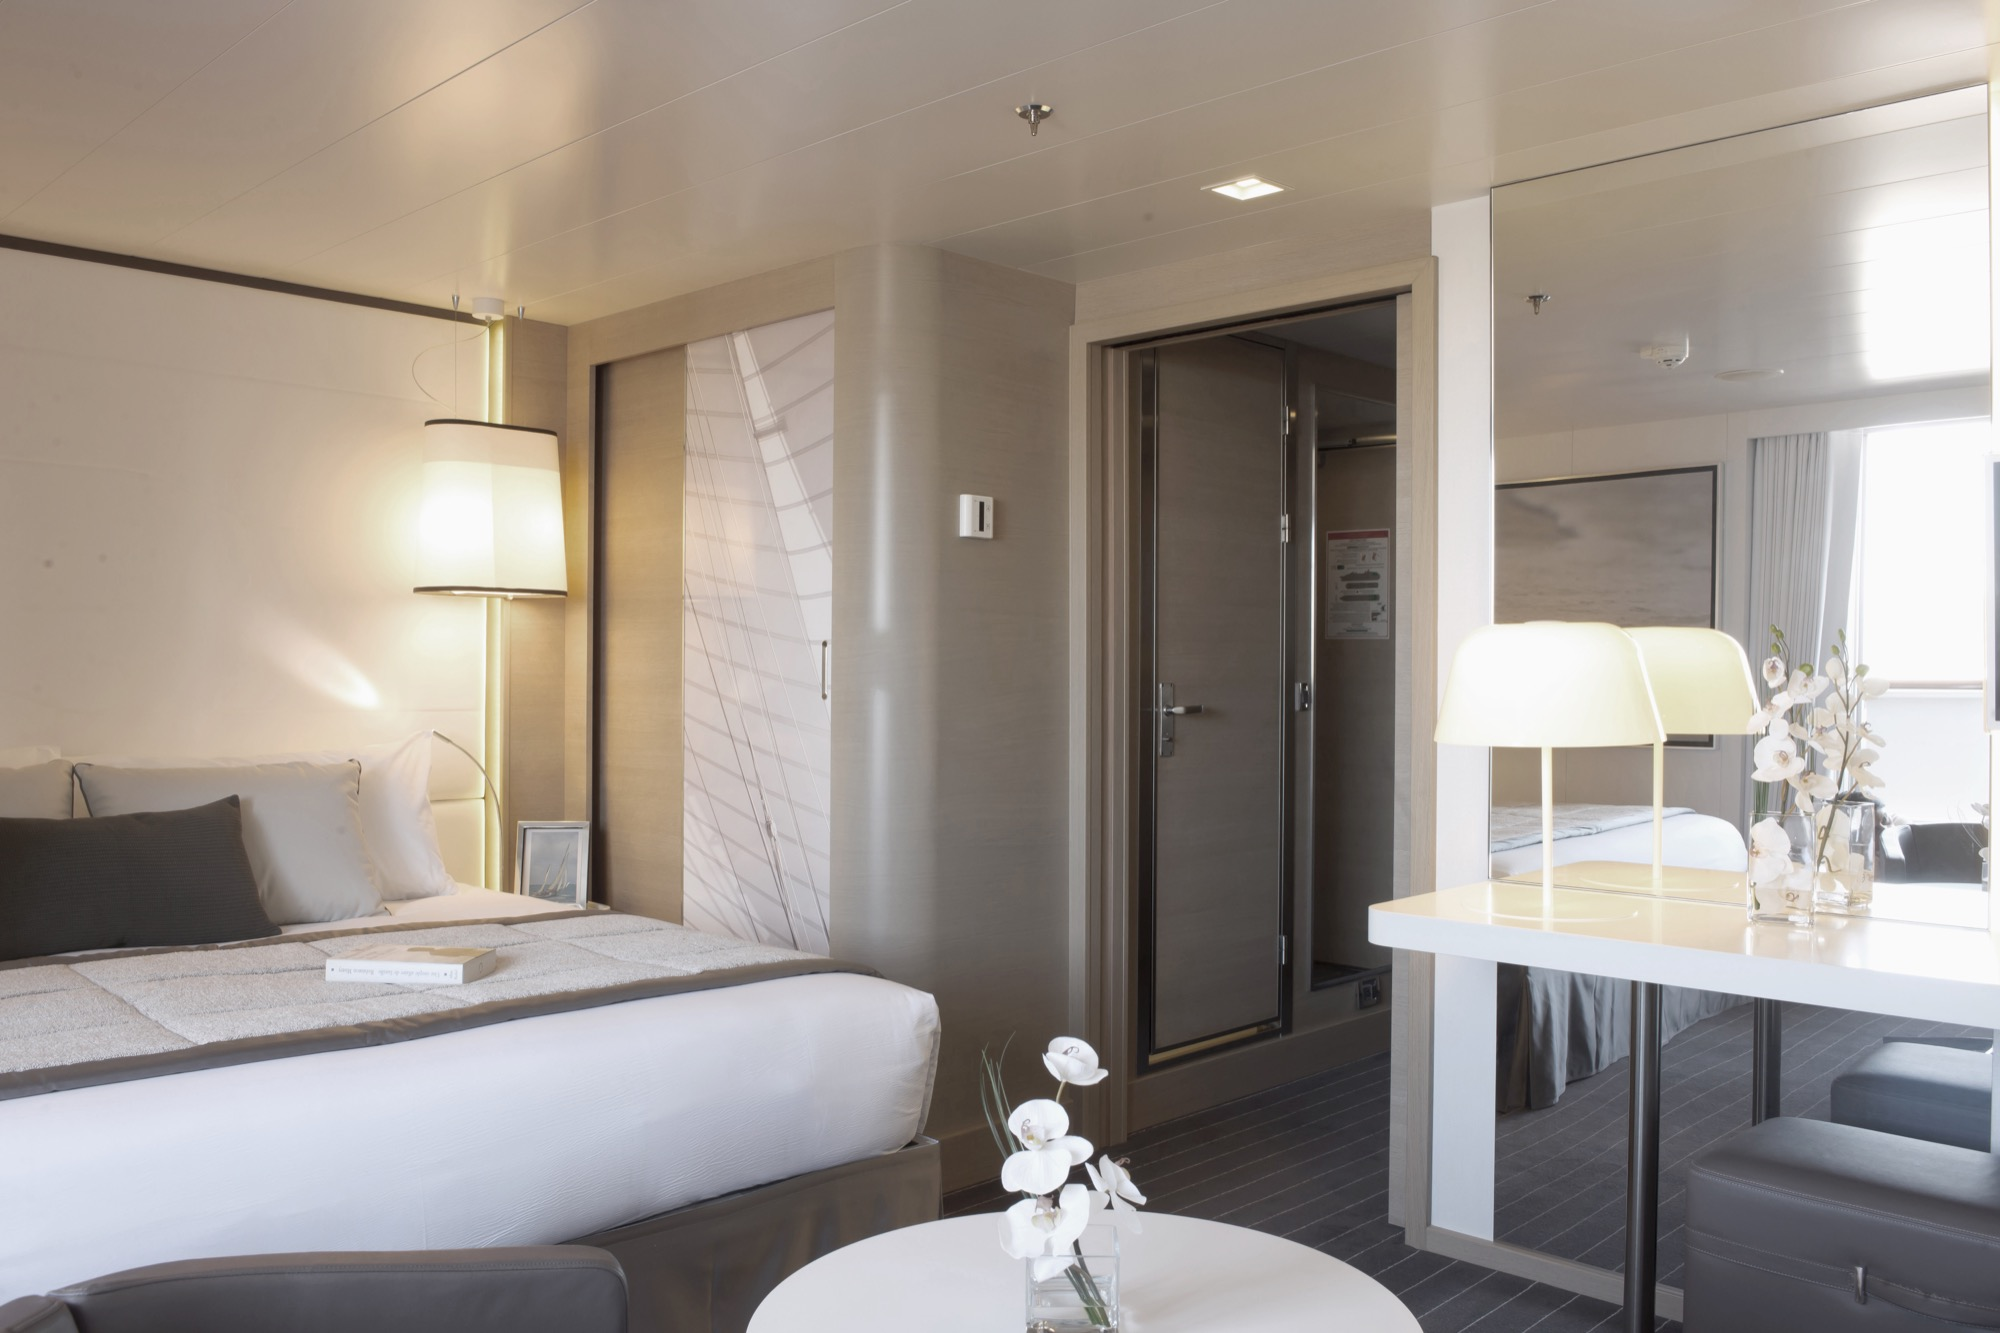 Ponant Le Soleal Accommodation Deluxe Suite.JPEG